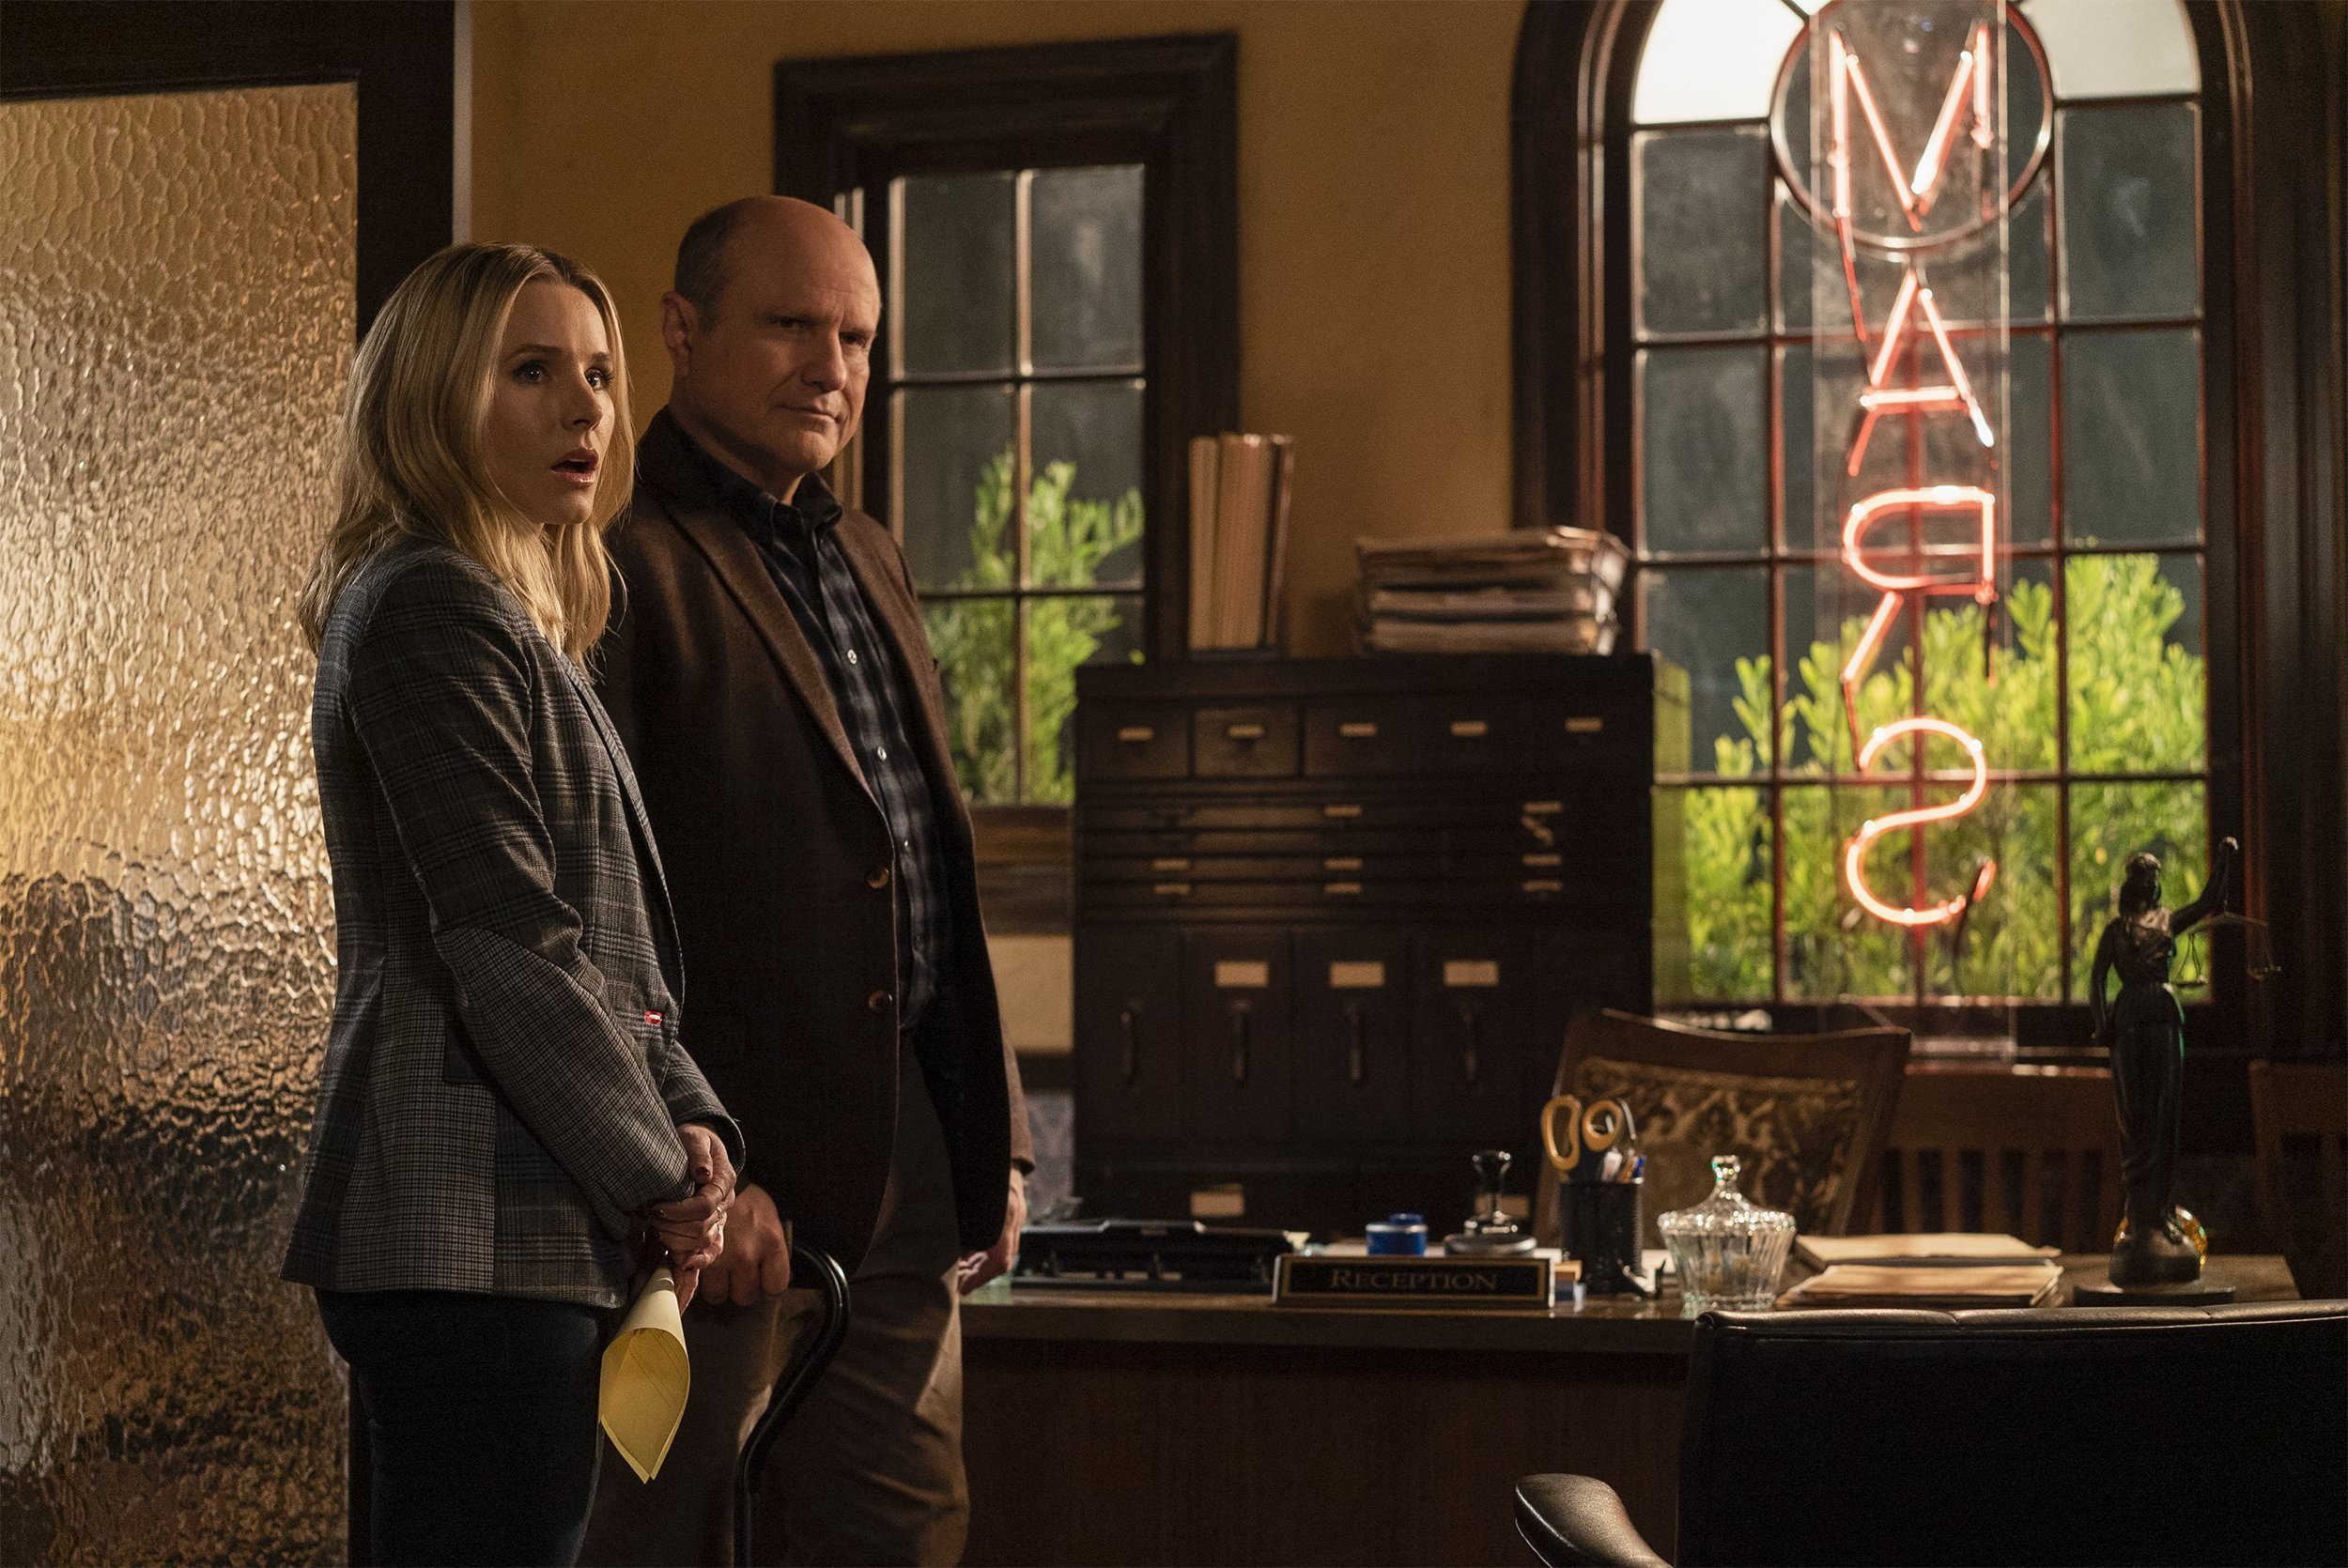 'Veronica Mars' creator discusses a potential Season 5